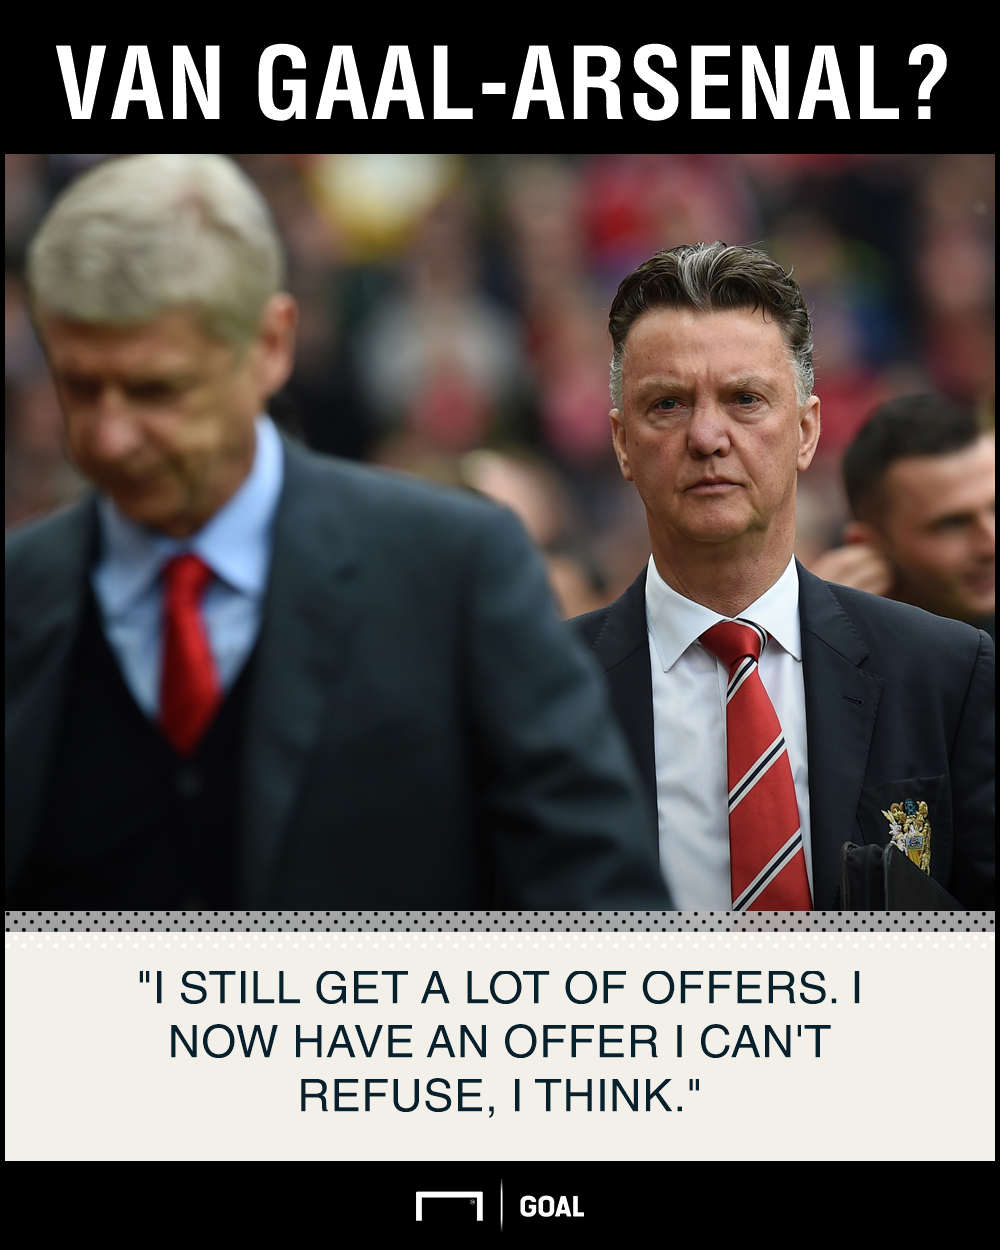 Louis van Gaal offer I can't refuse